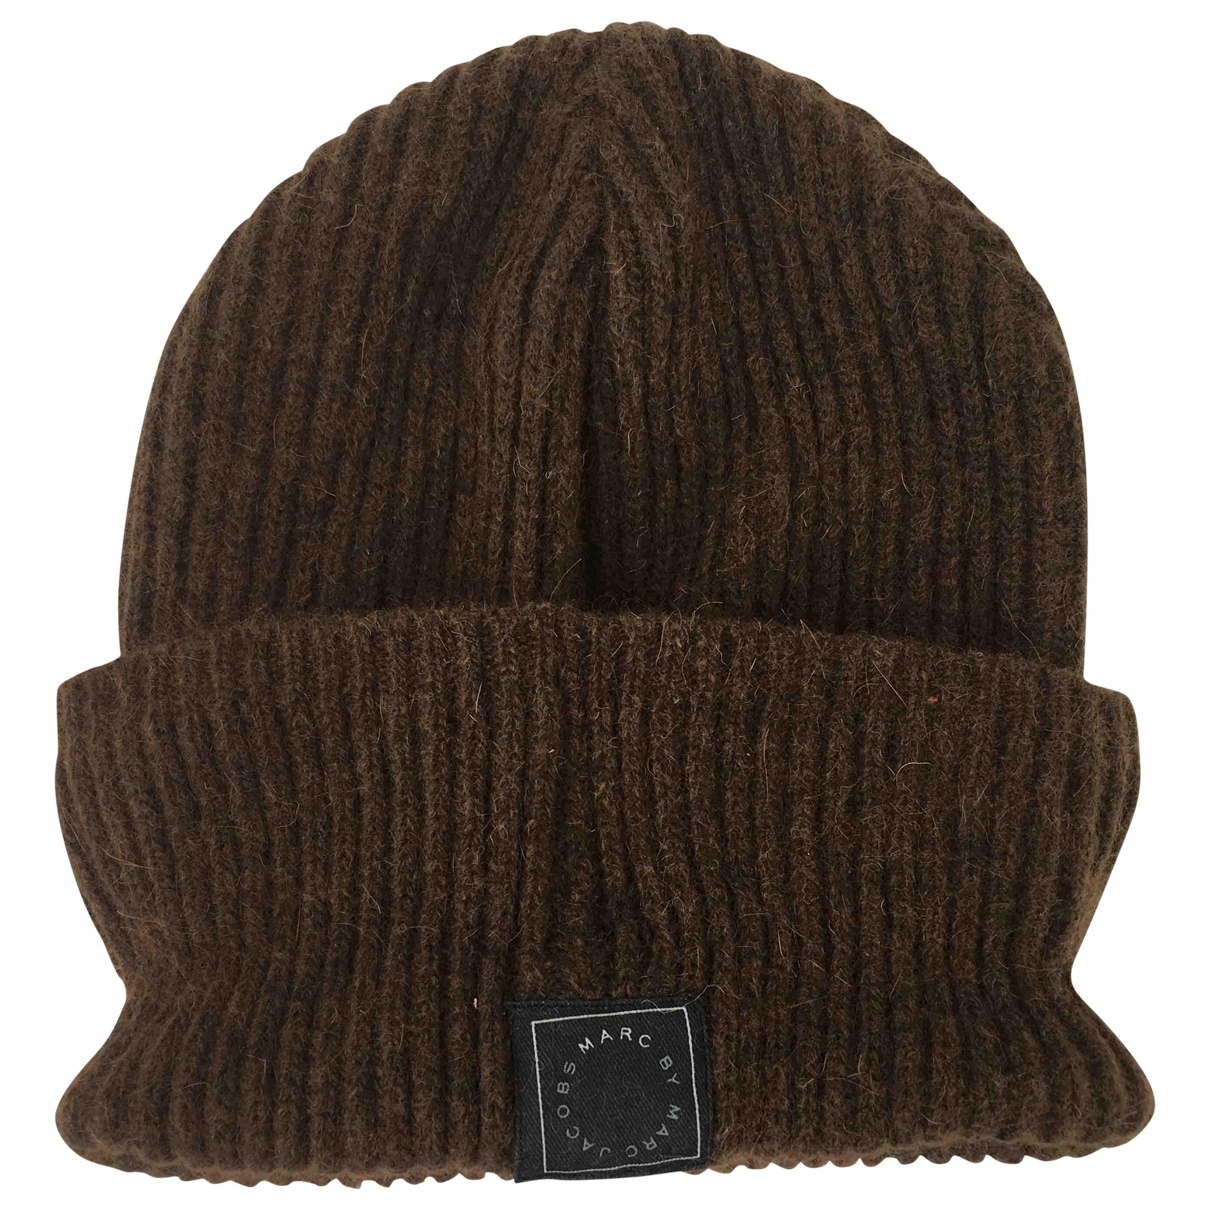 Marc By Marc Jacobs \N Brown Wool hat for Women M International